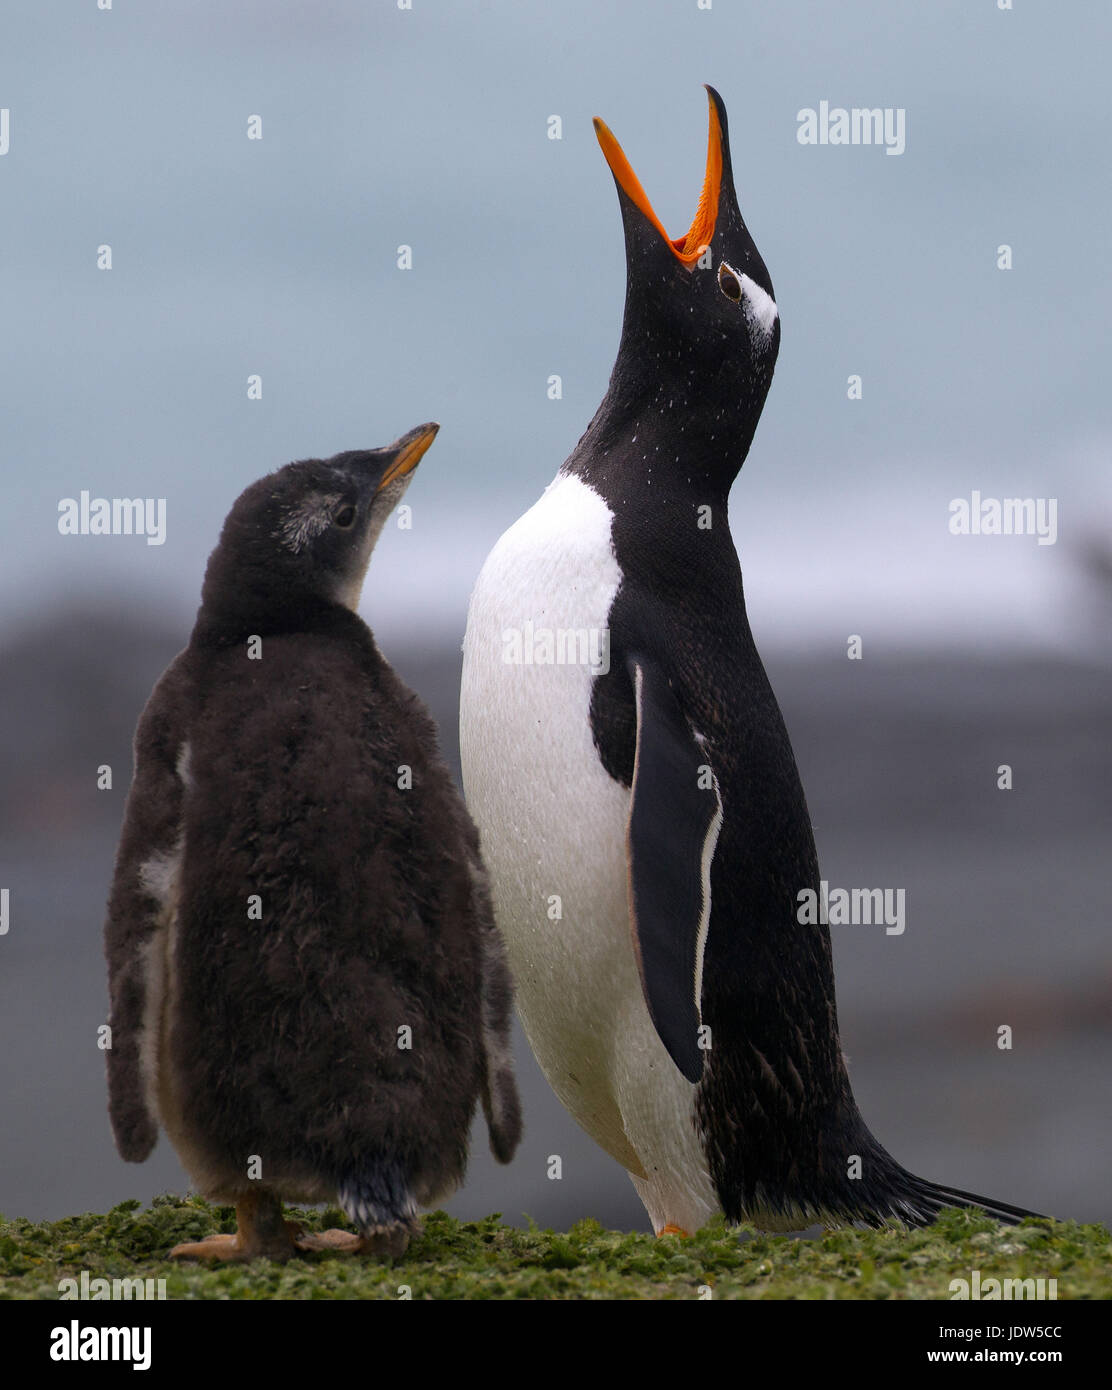 Gentoo penguin and chick, Macquarie Island, Southern Ocean - Stock Image